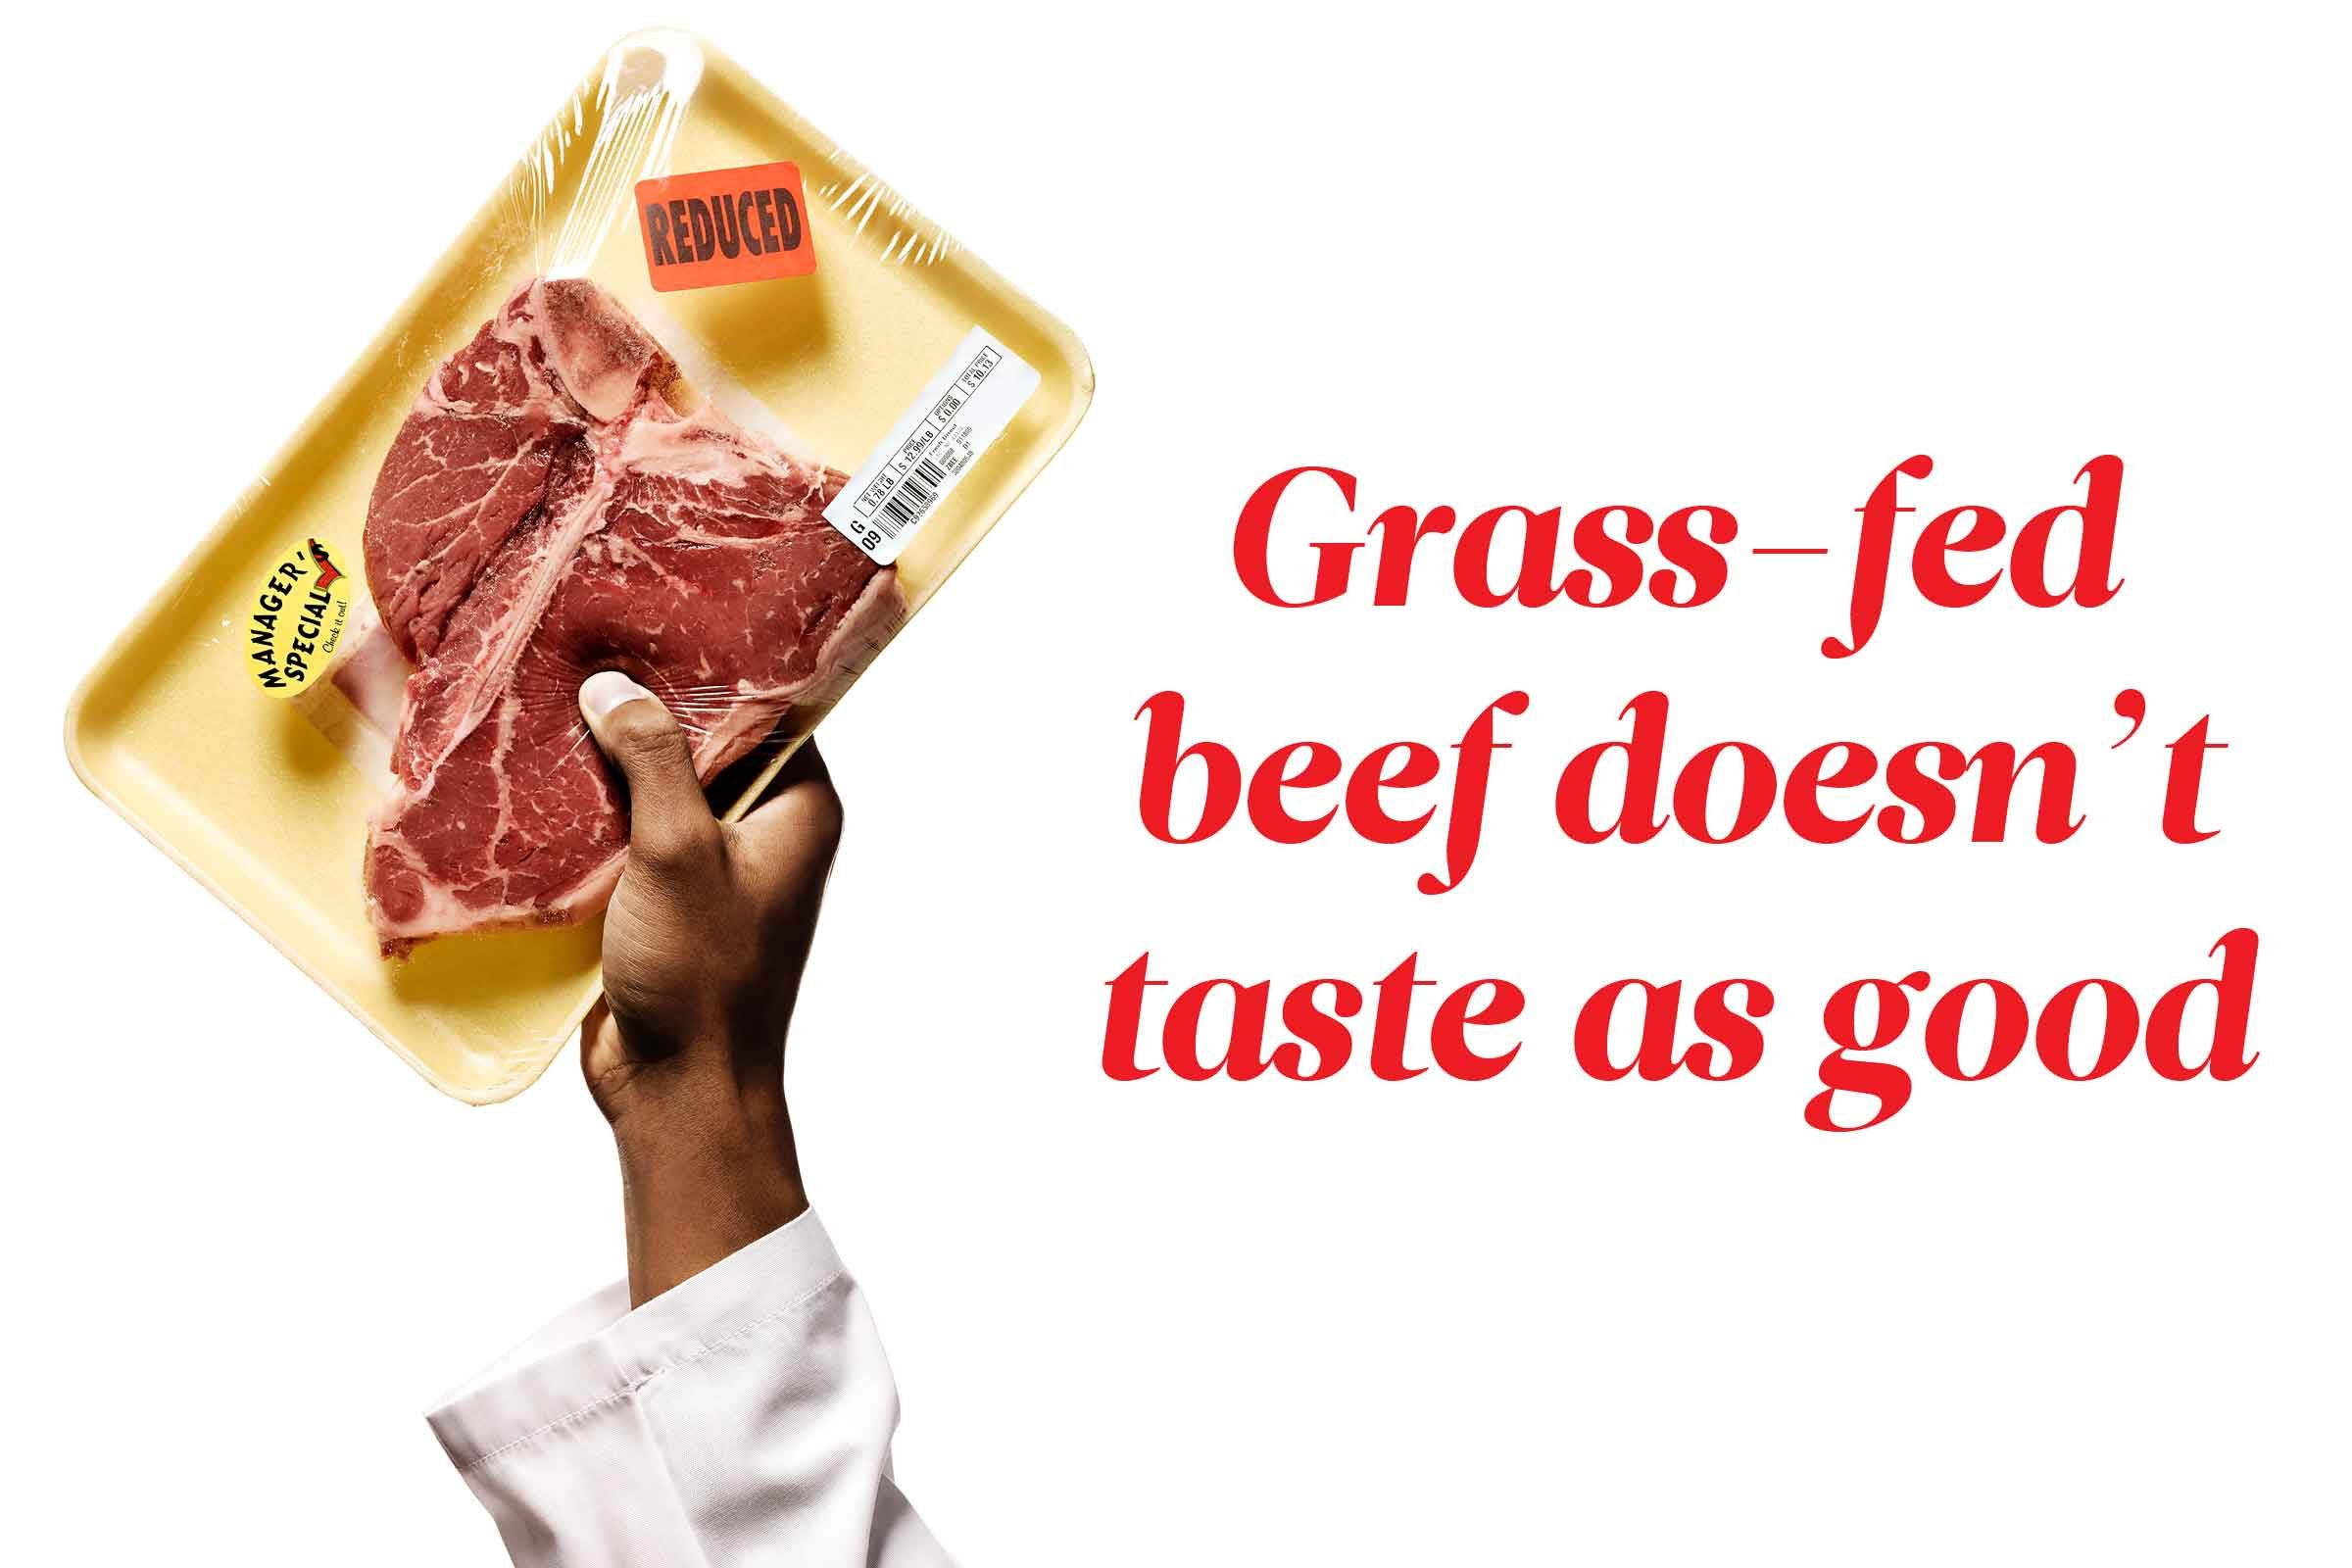 Here's the truth about grass-fed beef: